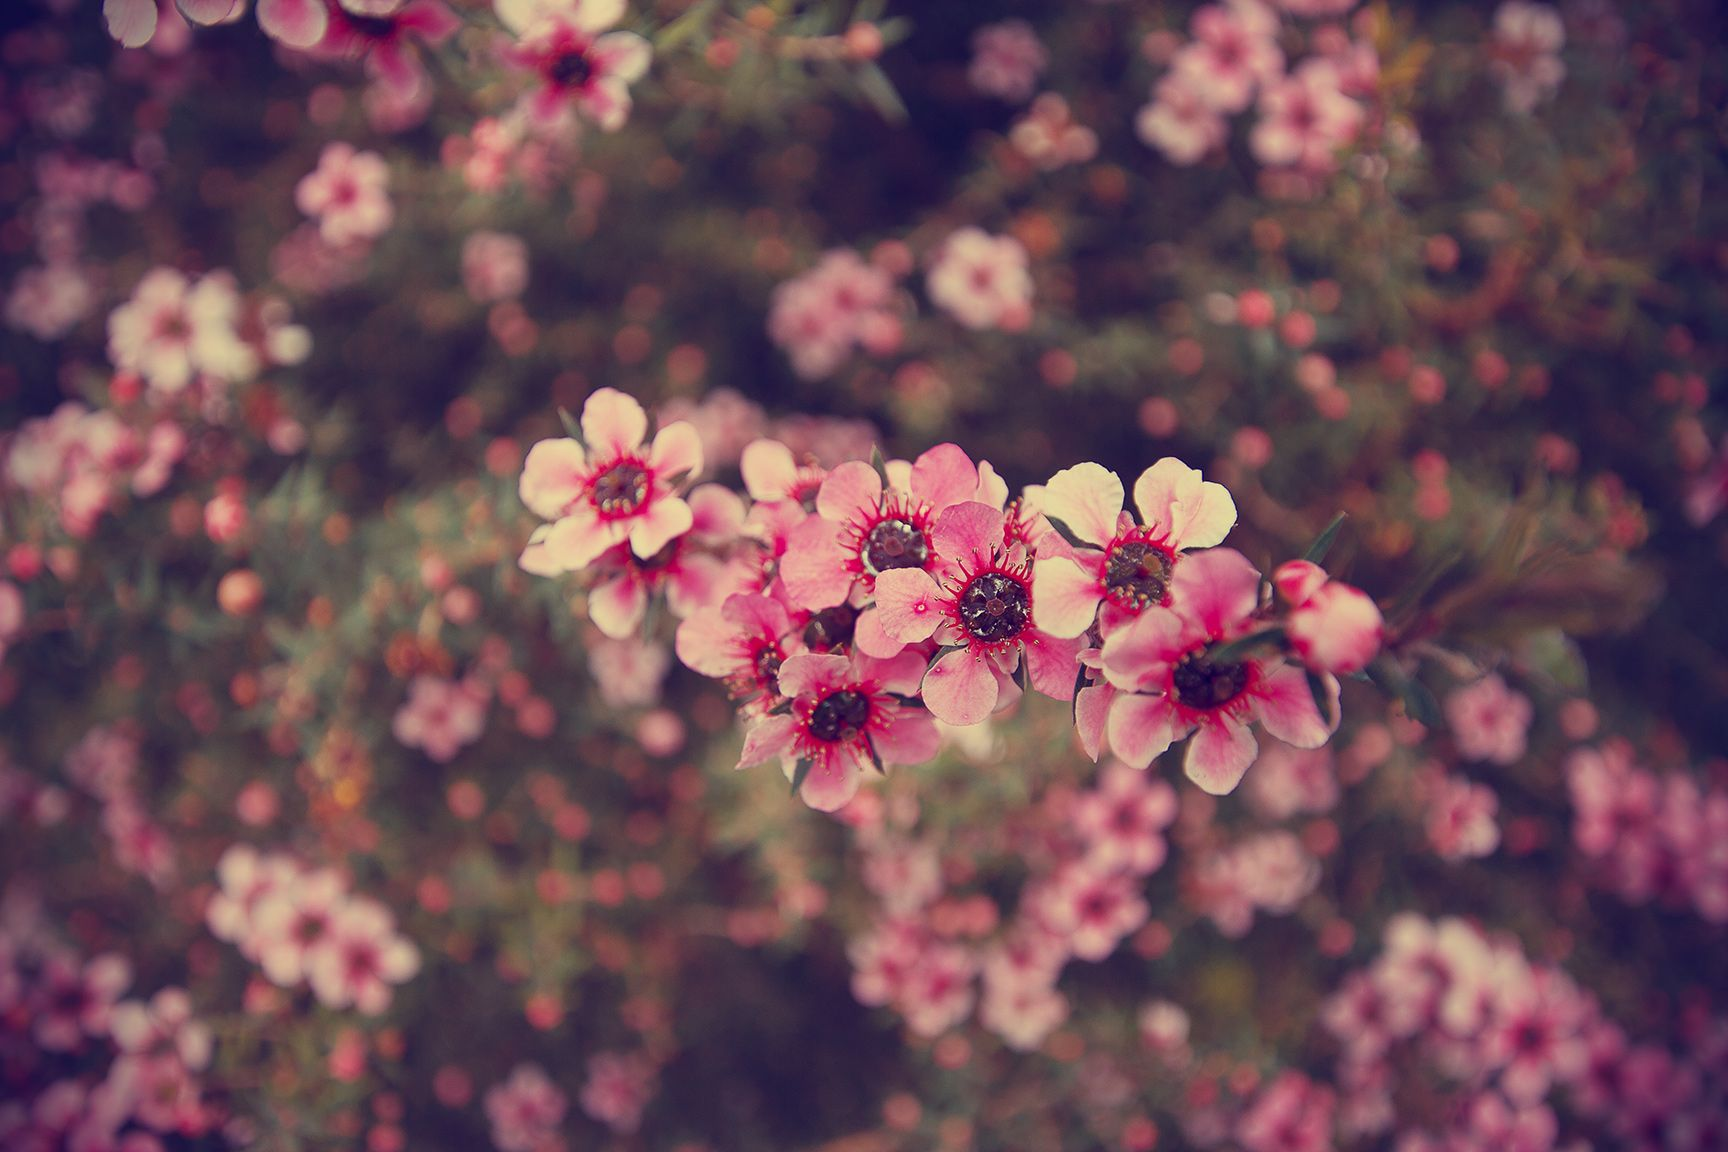 Tumblr Flowers Desktop Wallpapers Top Free Tumblr Flowers